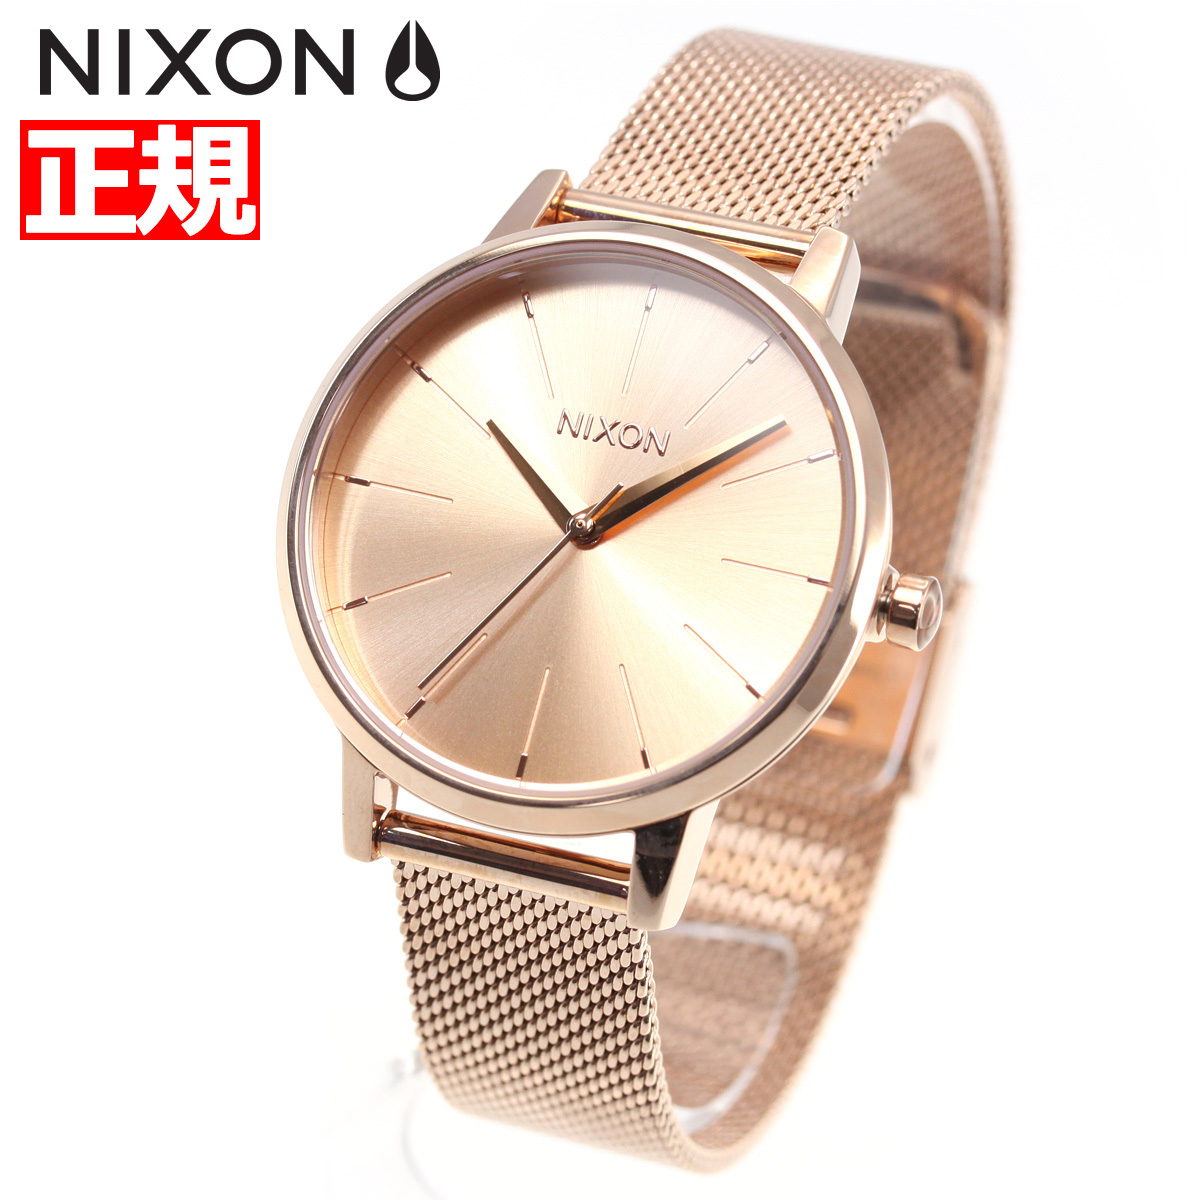 【SHOP OF THE YEAR 2018 受賞】ニクソン NIXON ケンジントン ミラネーゼ KENSINGTON MILANESE 腕時計 レディース ALL ROSE GOLD NA1229897-00【2018 新作】